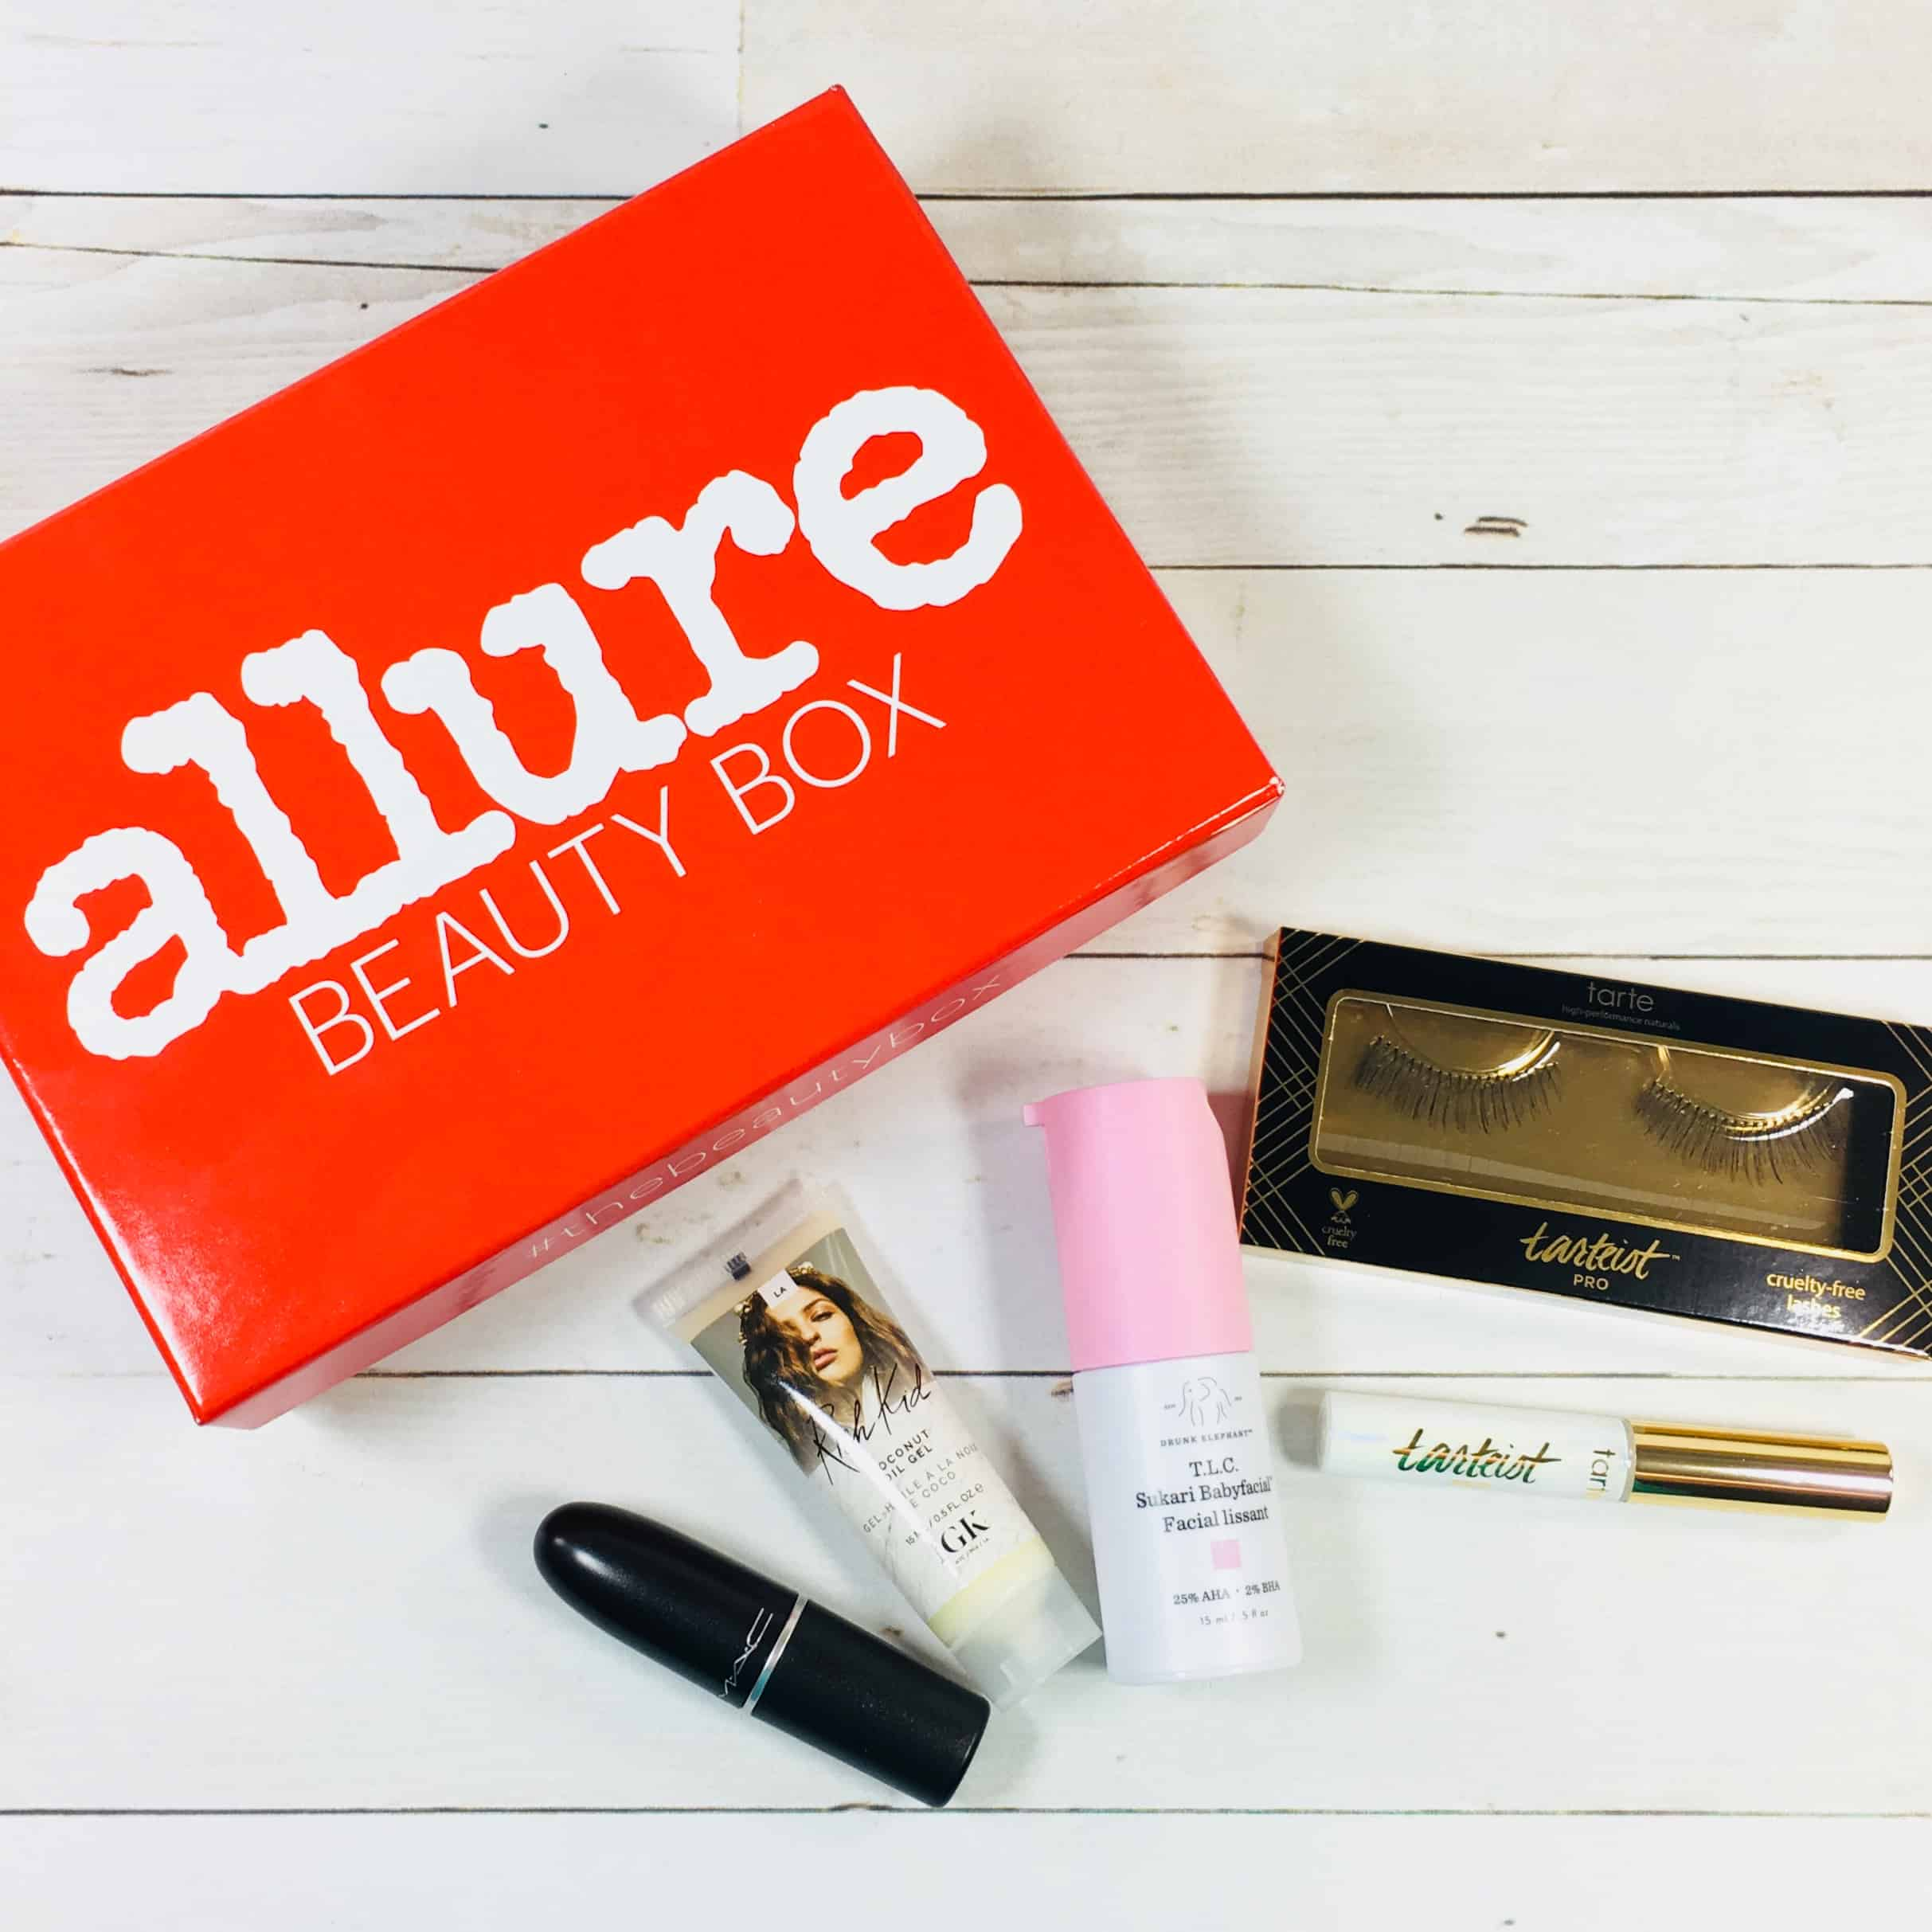 Allure Beauty Box September 2018 Subscription Box Review & Coupon